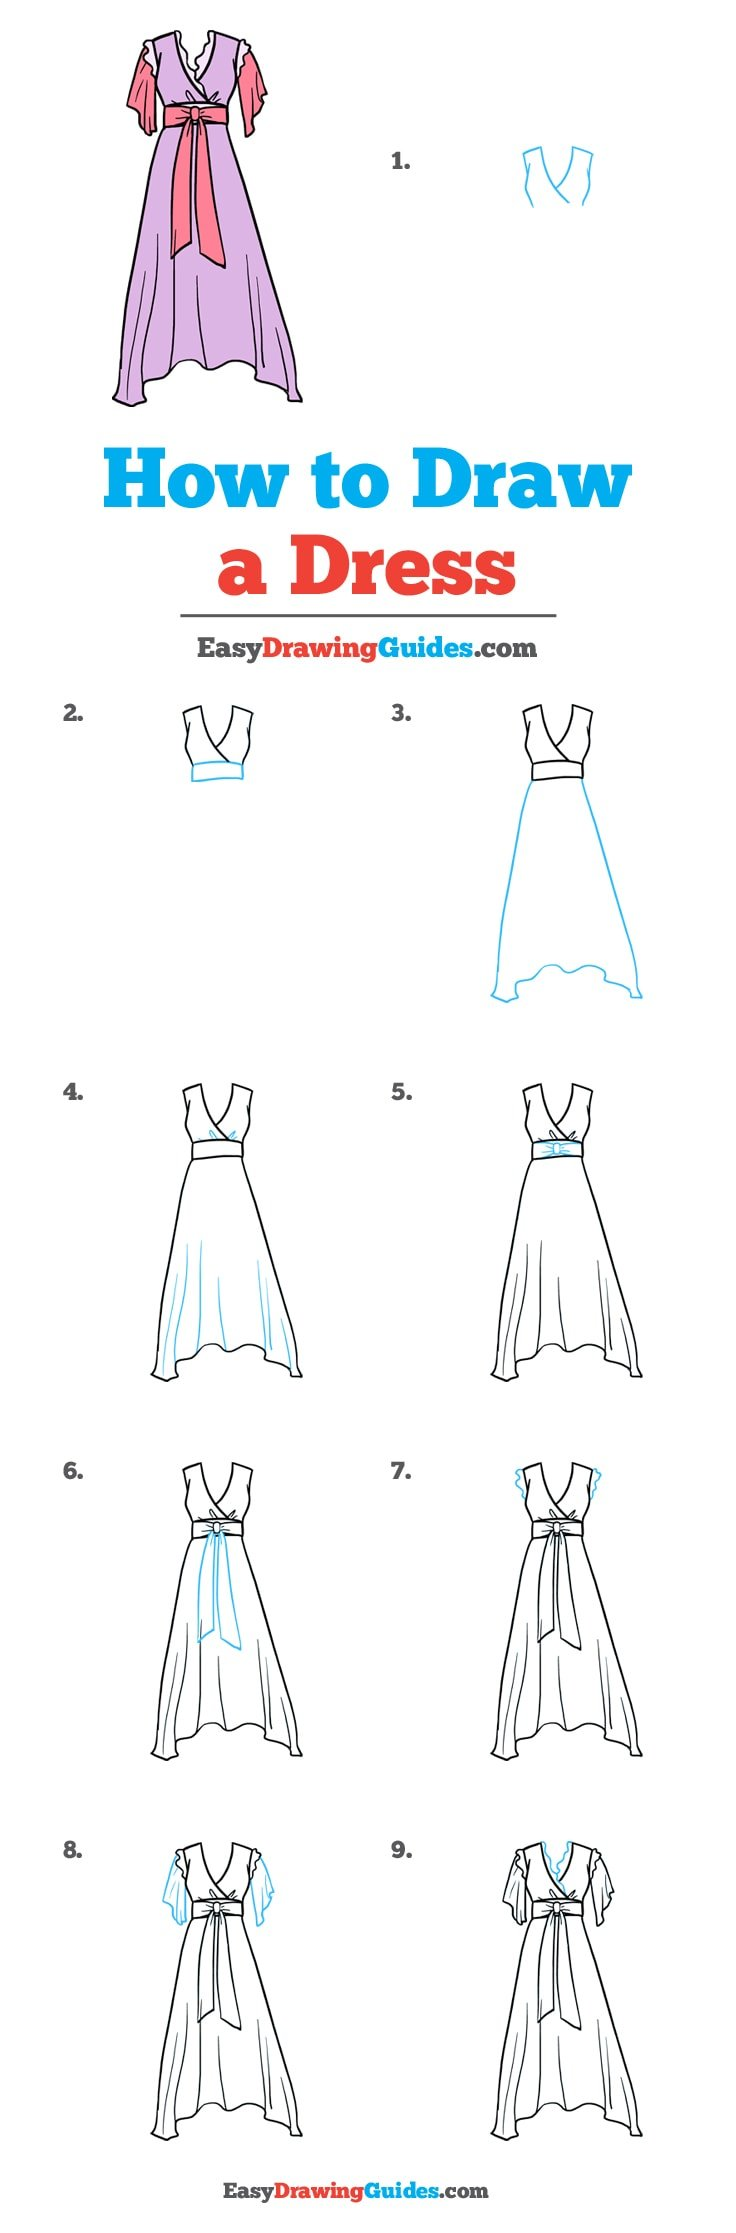 How to Draw Dress